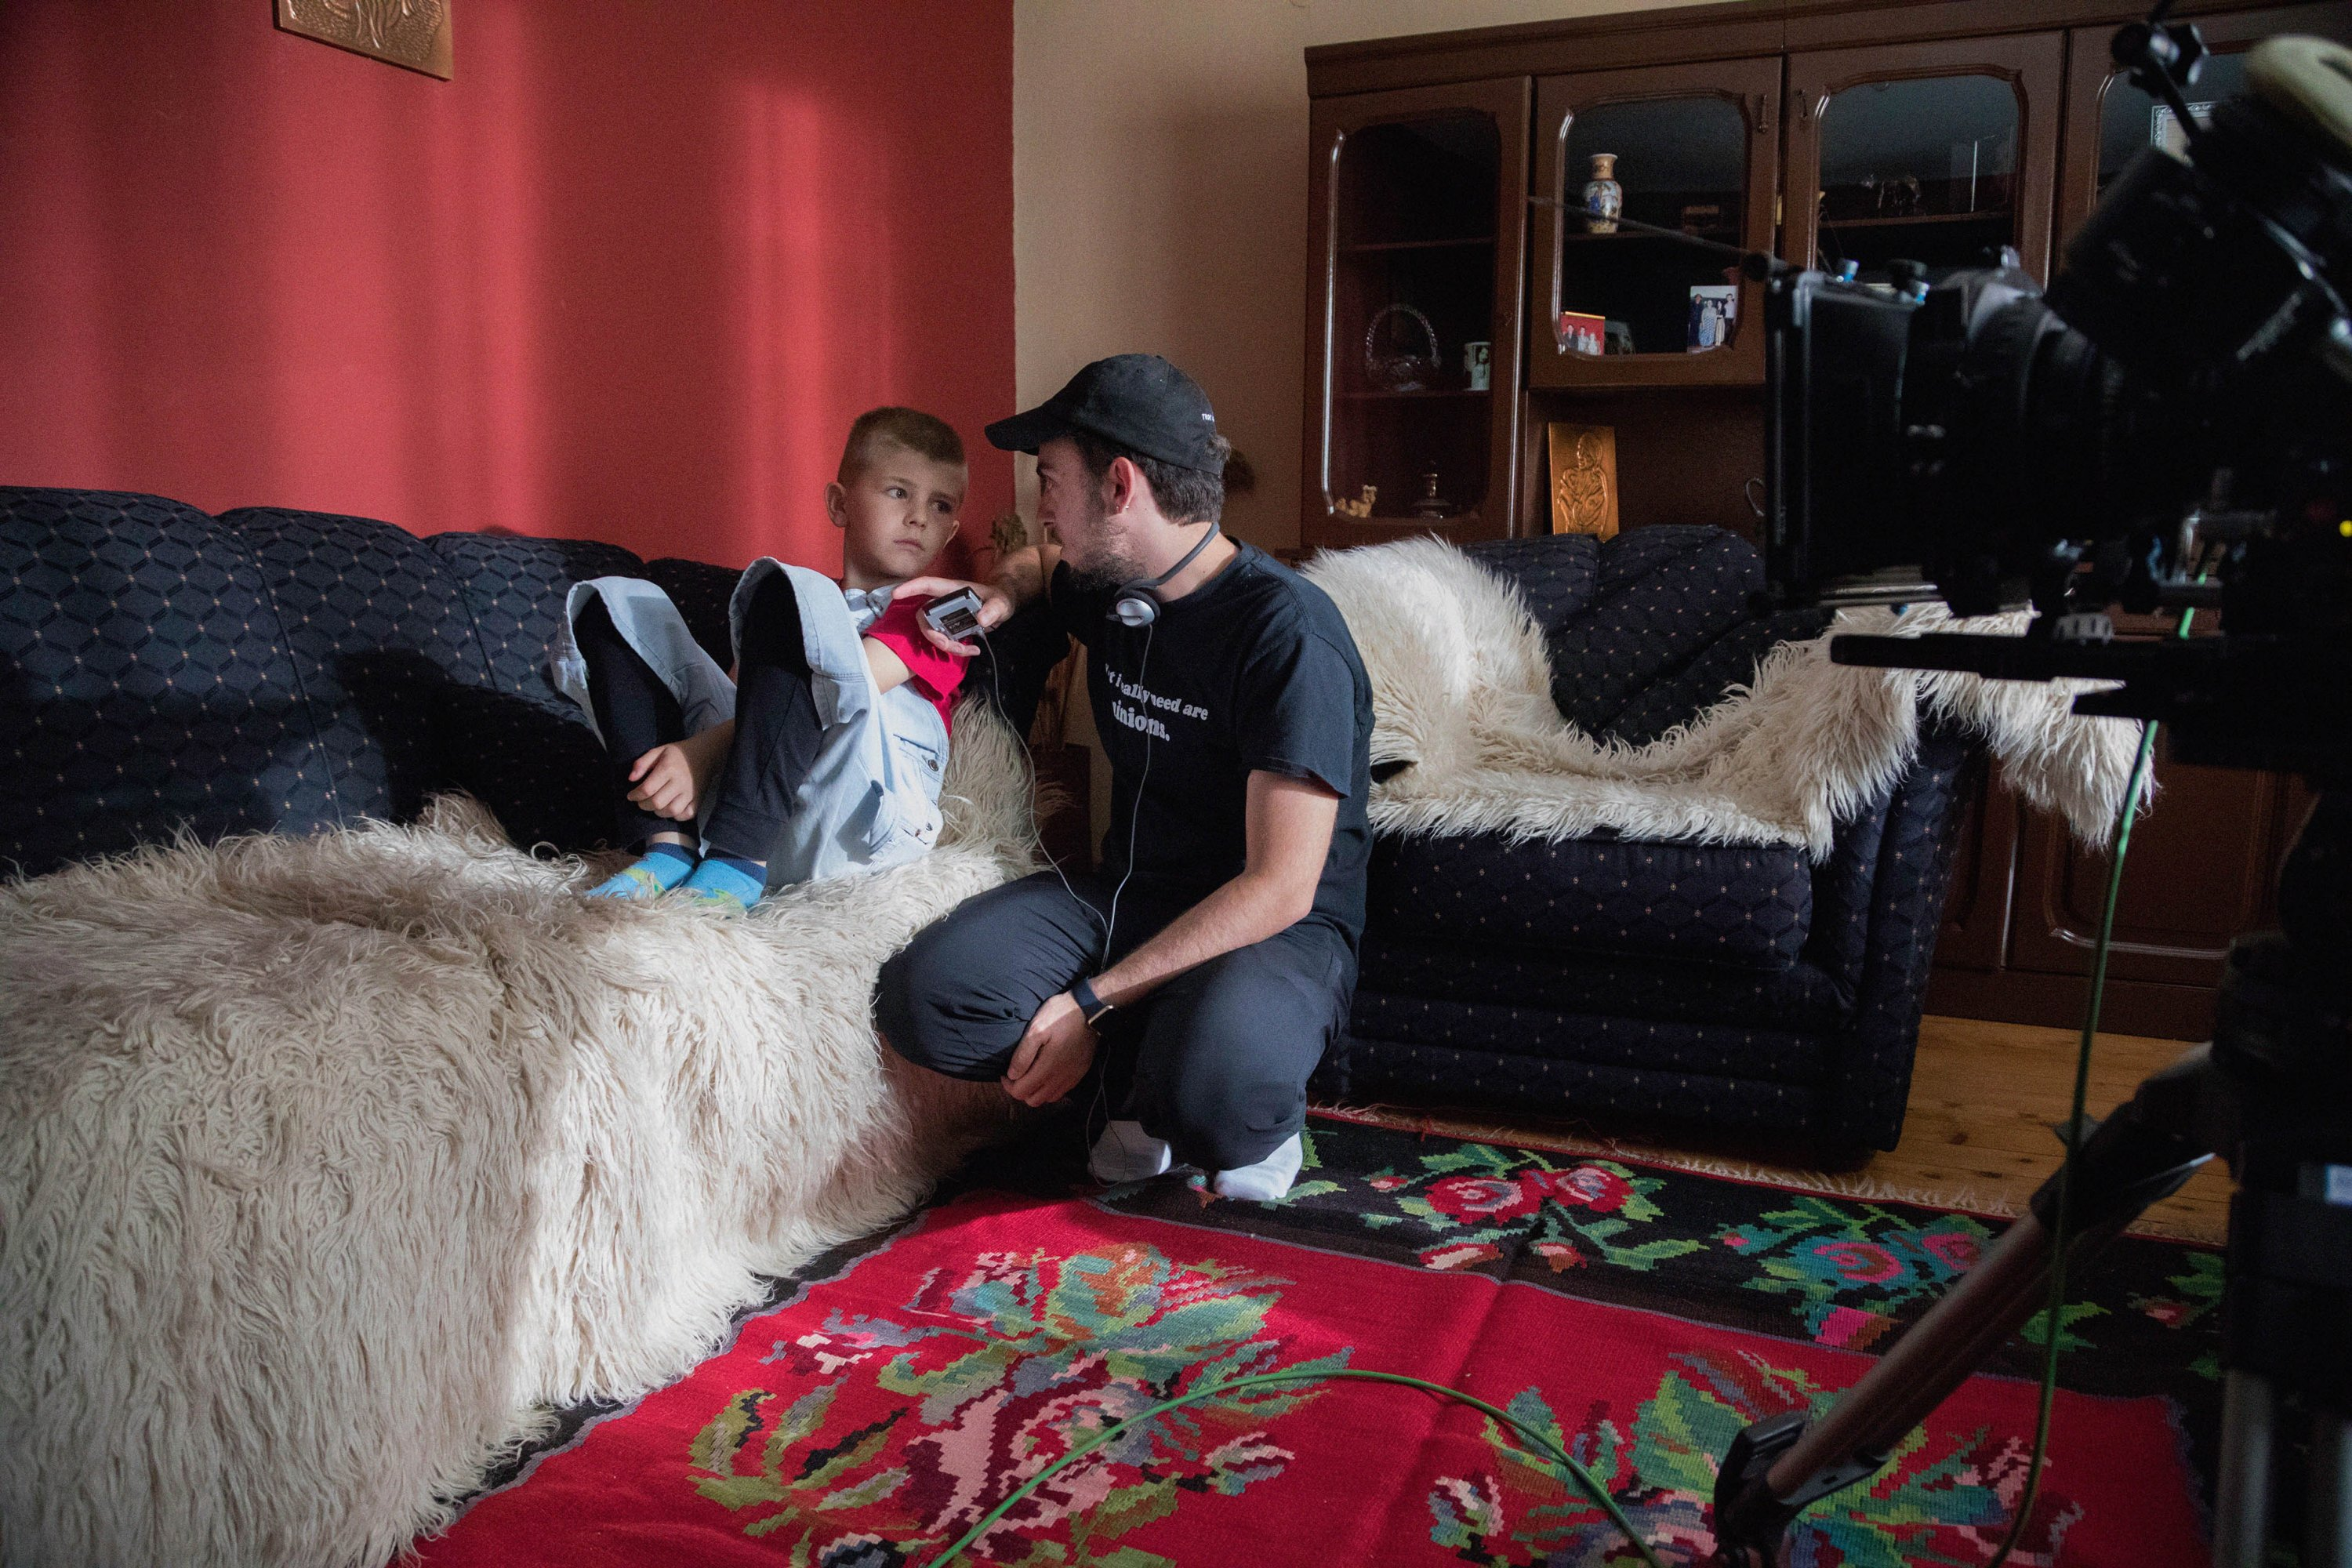 Behind the scenes, Erblin Nushi chats with the young actor who plays Nushi in the film. Photograph courtesy of Tilia Entertainment.